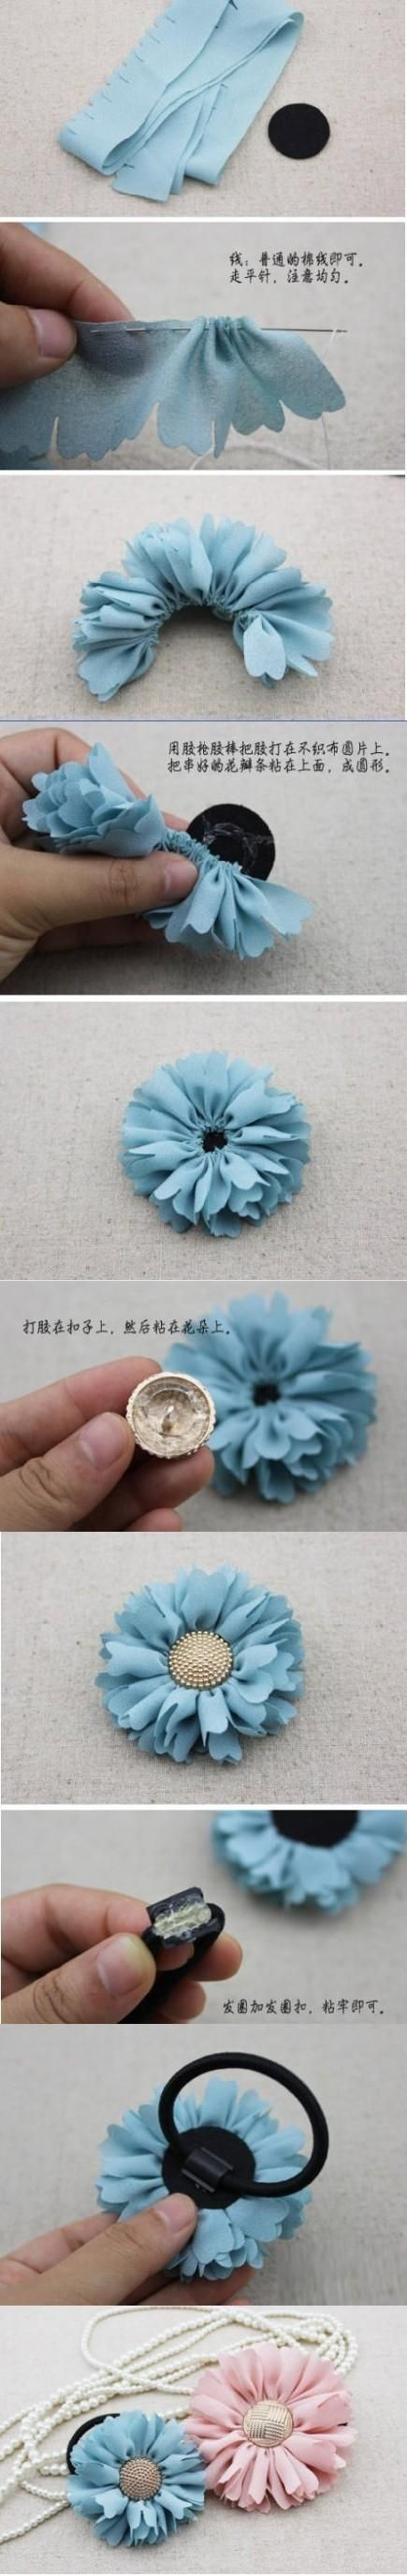 diy these are so cute! I could see them on a headband or to dress up a simple basket!